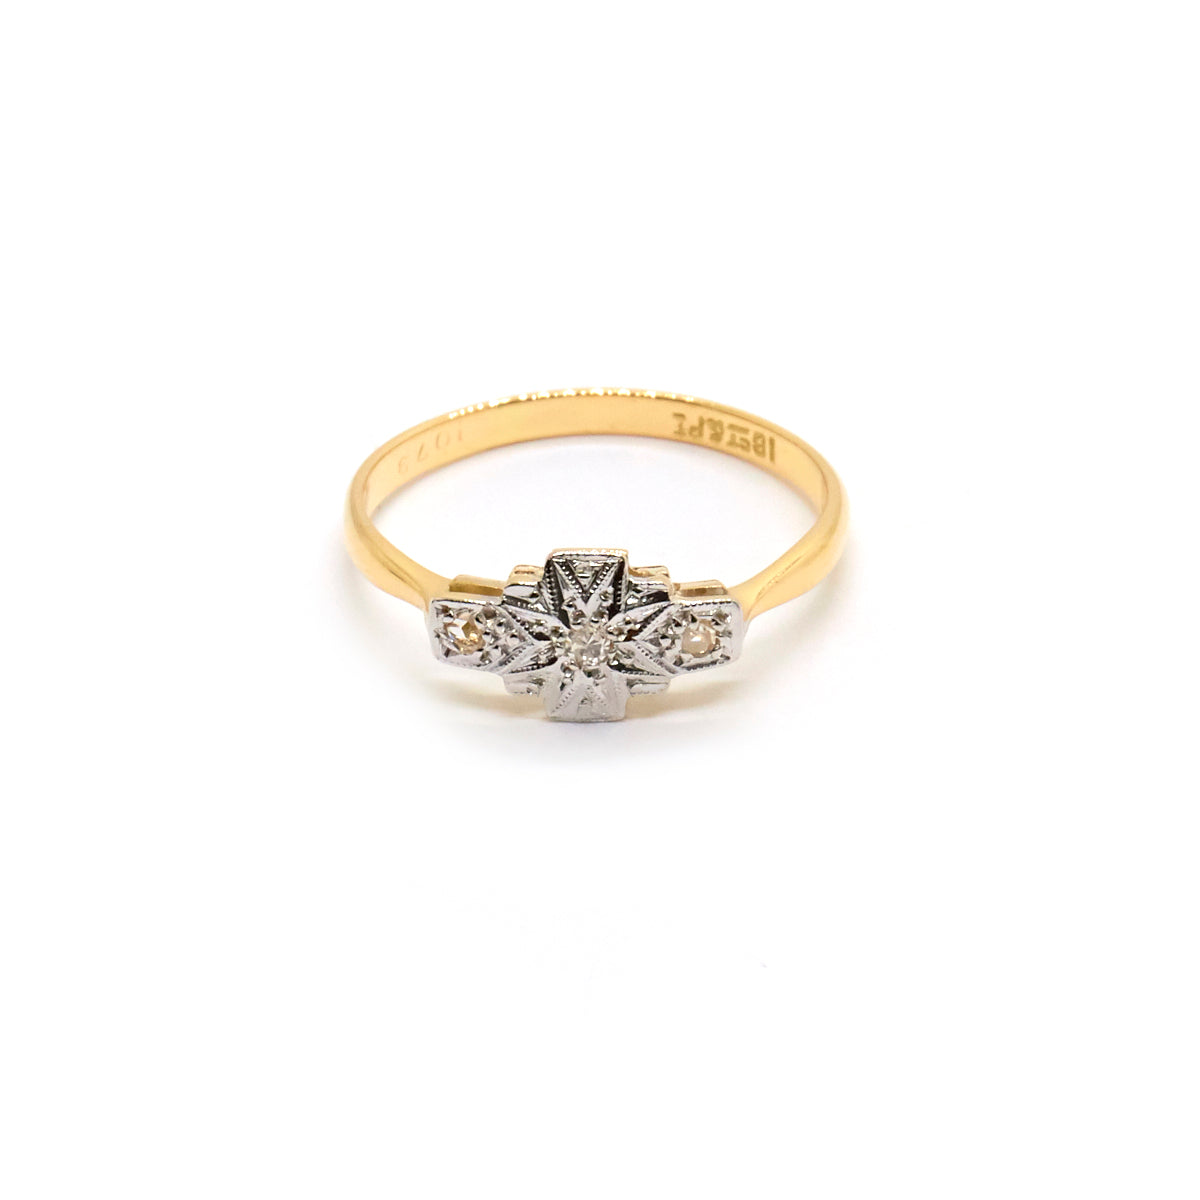 Harriet | Vintage Edwardian Diamond Star Ring